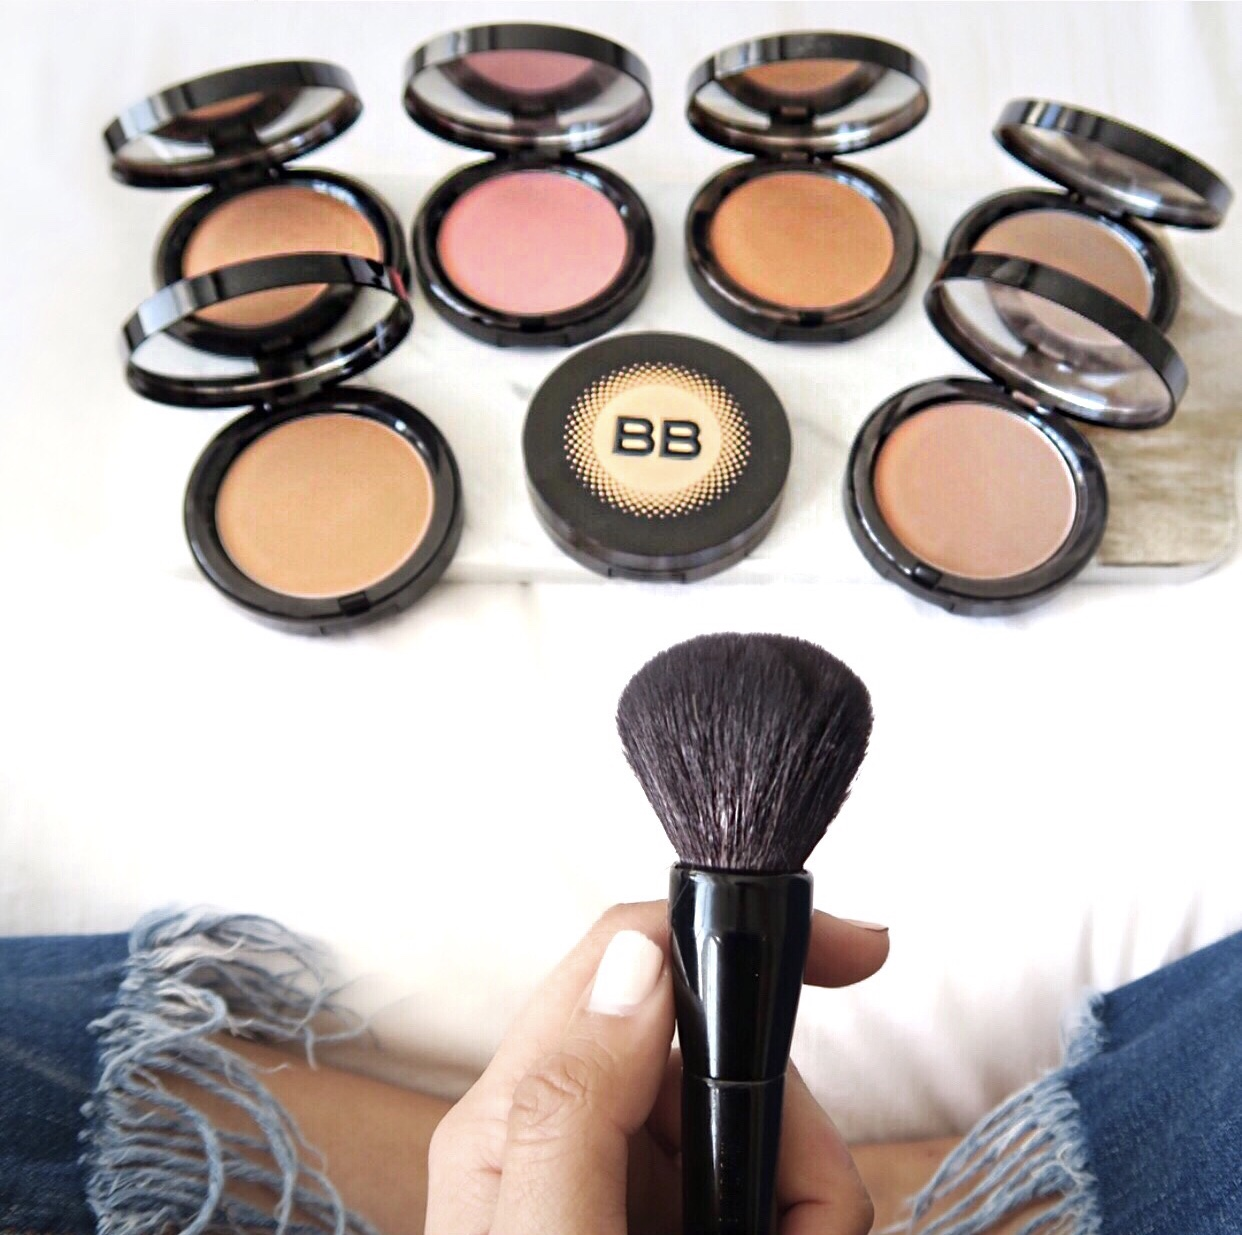 HOW TO CHOOSE A BRONZING POWDER